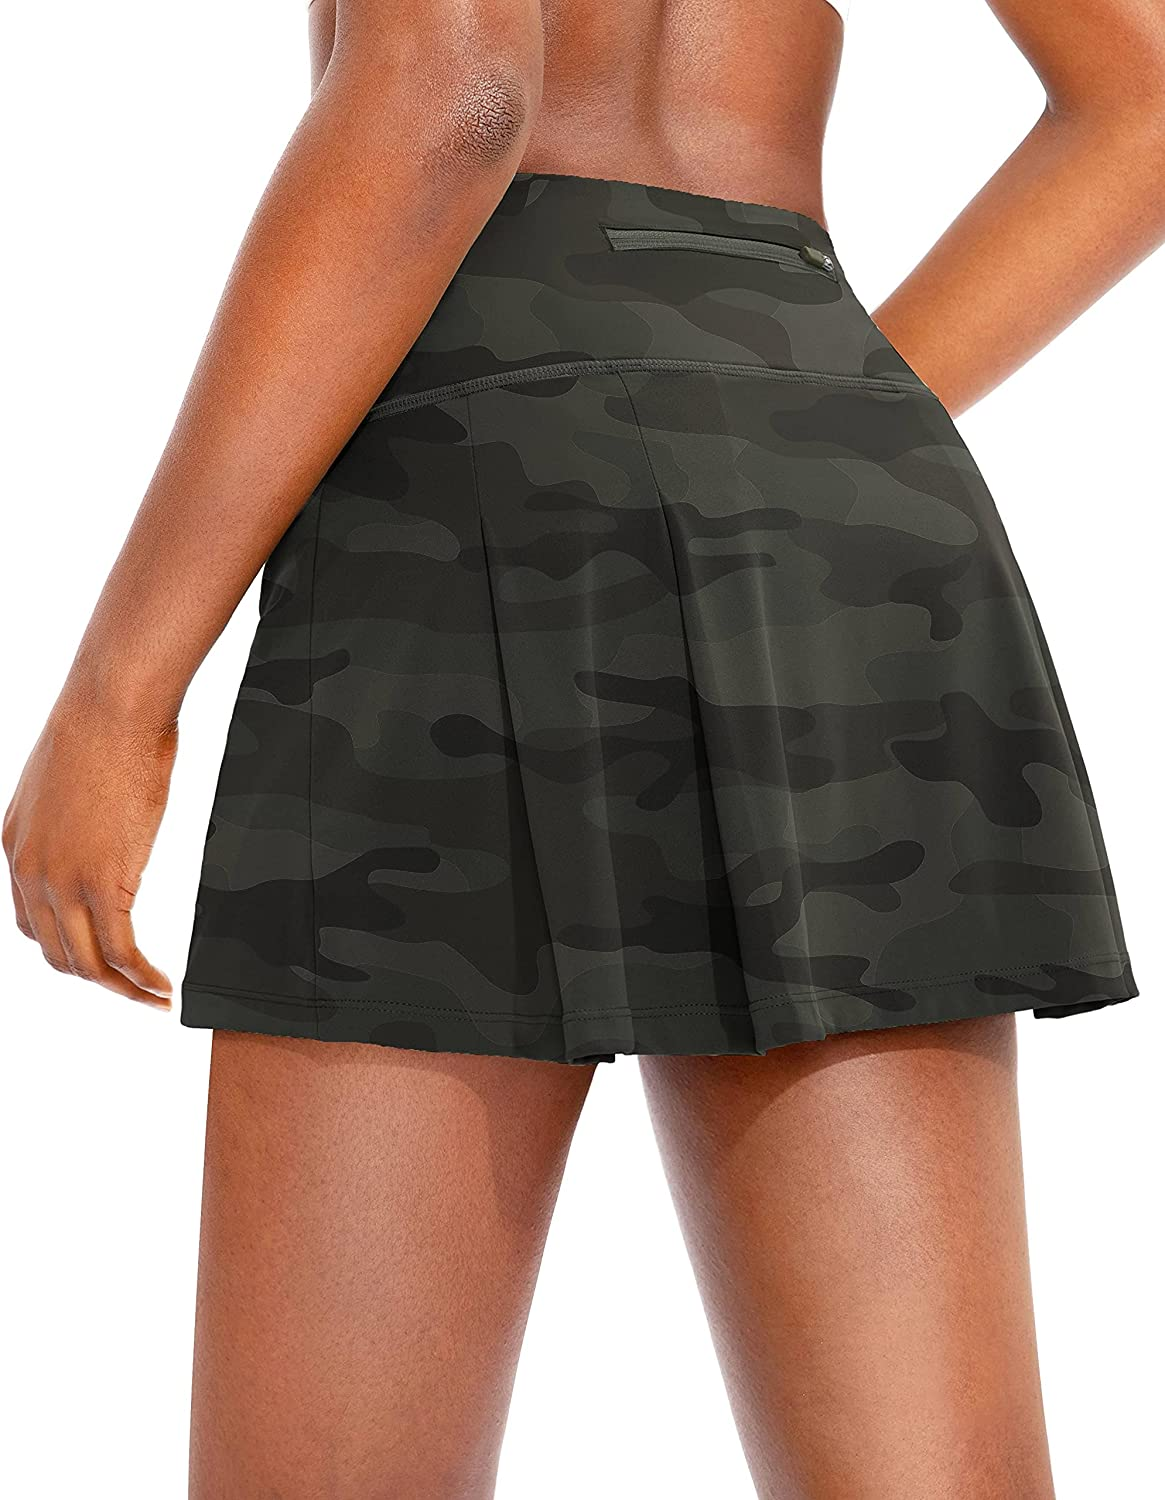 Popular brand in the world Soothfeel Pleated Tennis Skirt for Pockets with Women Outlet sale feature Women's Hi